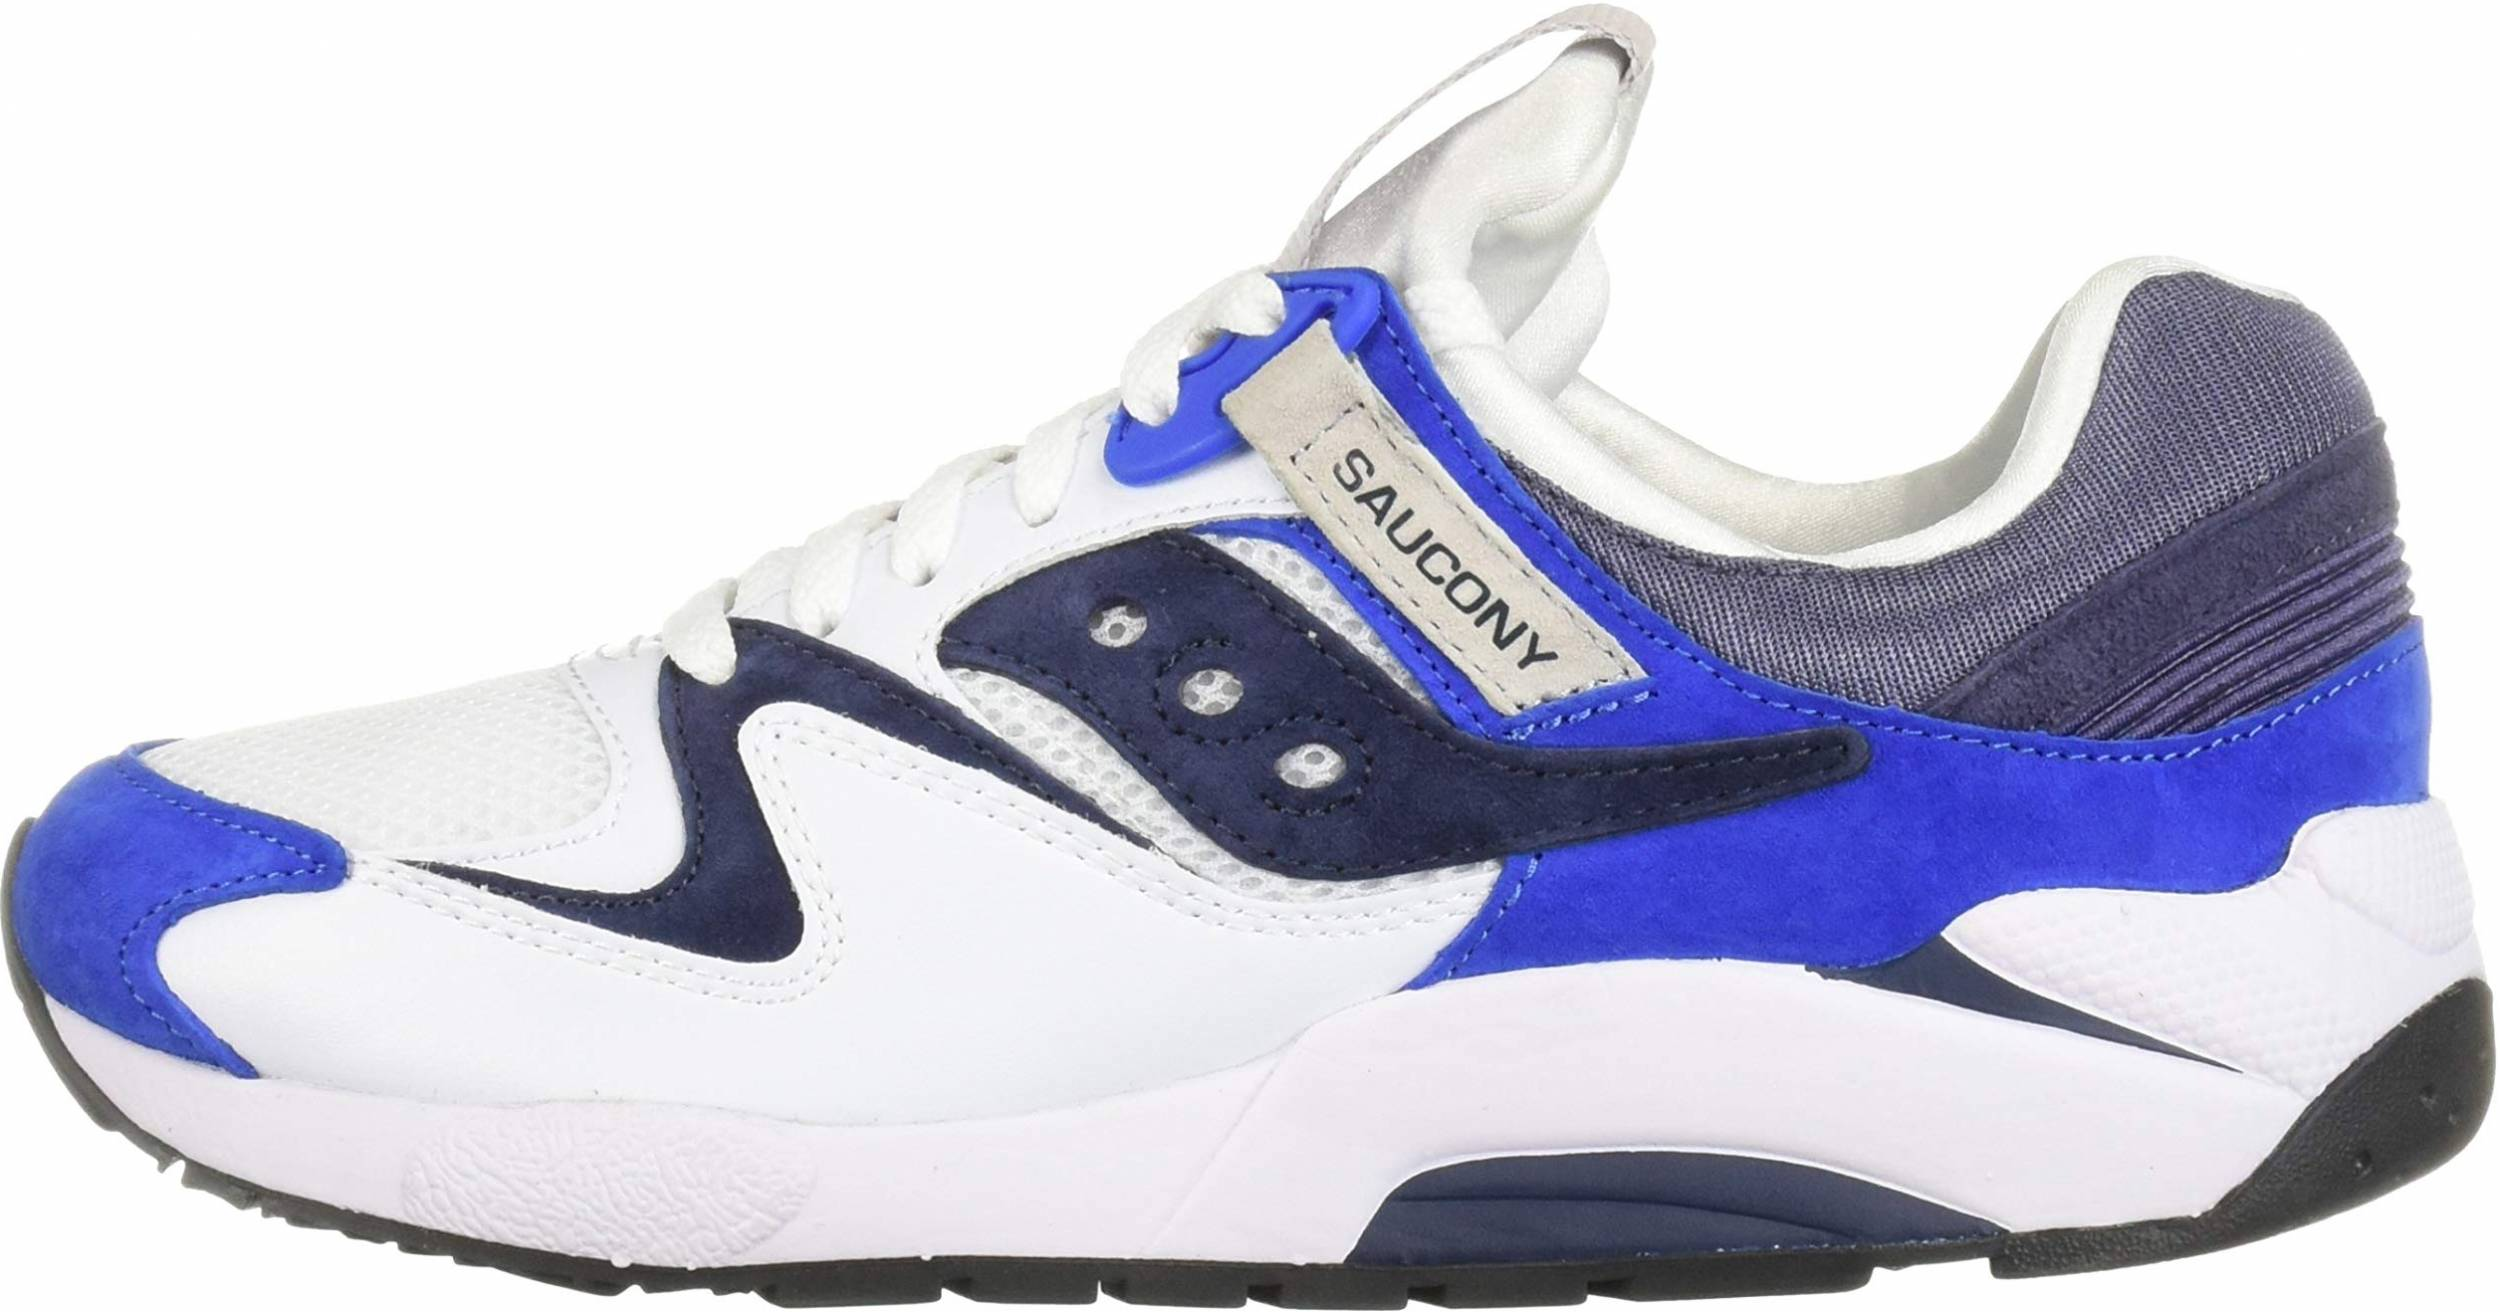 Only $42 + Review of Saucony Grid 9000